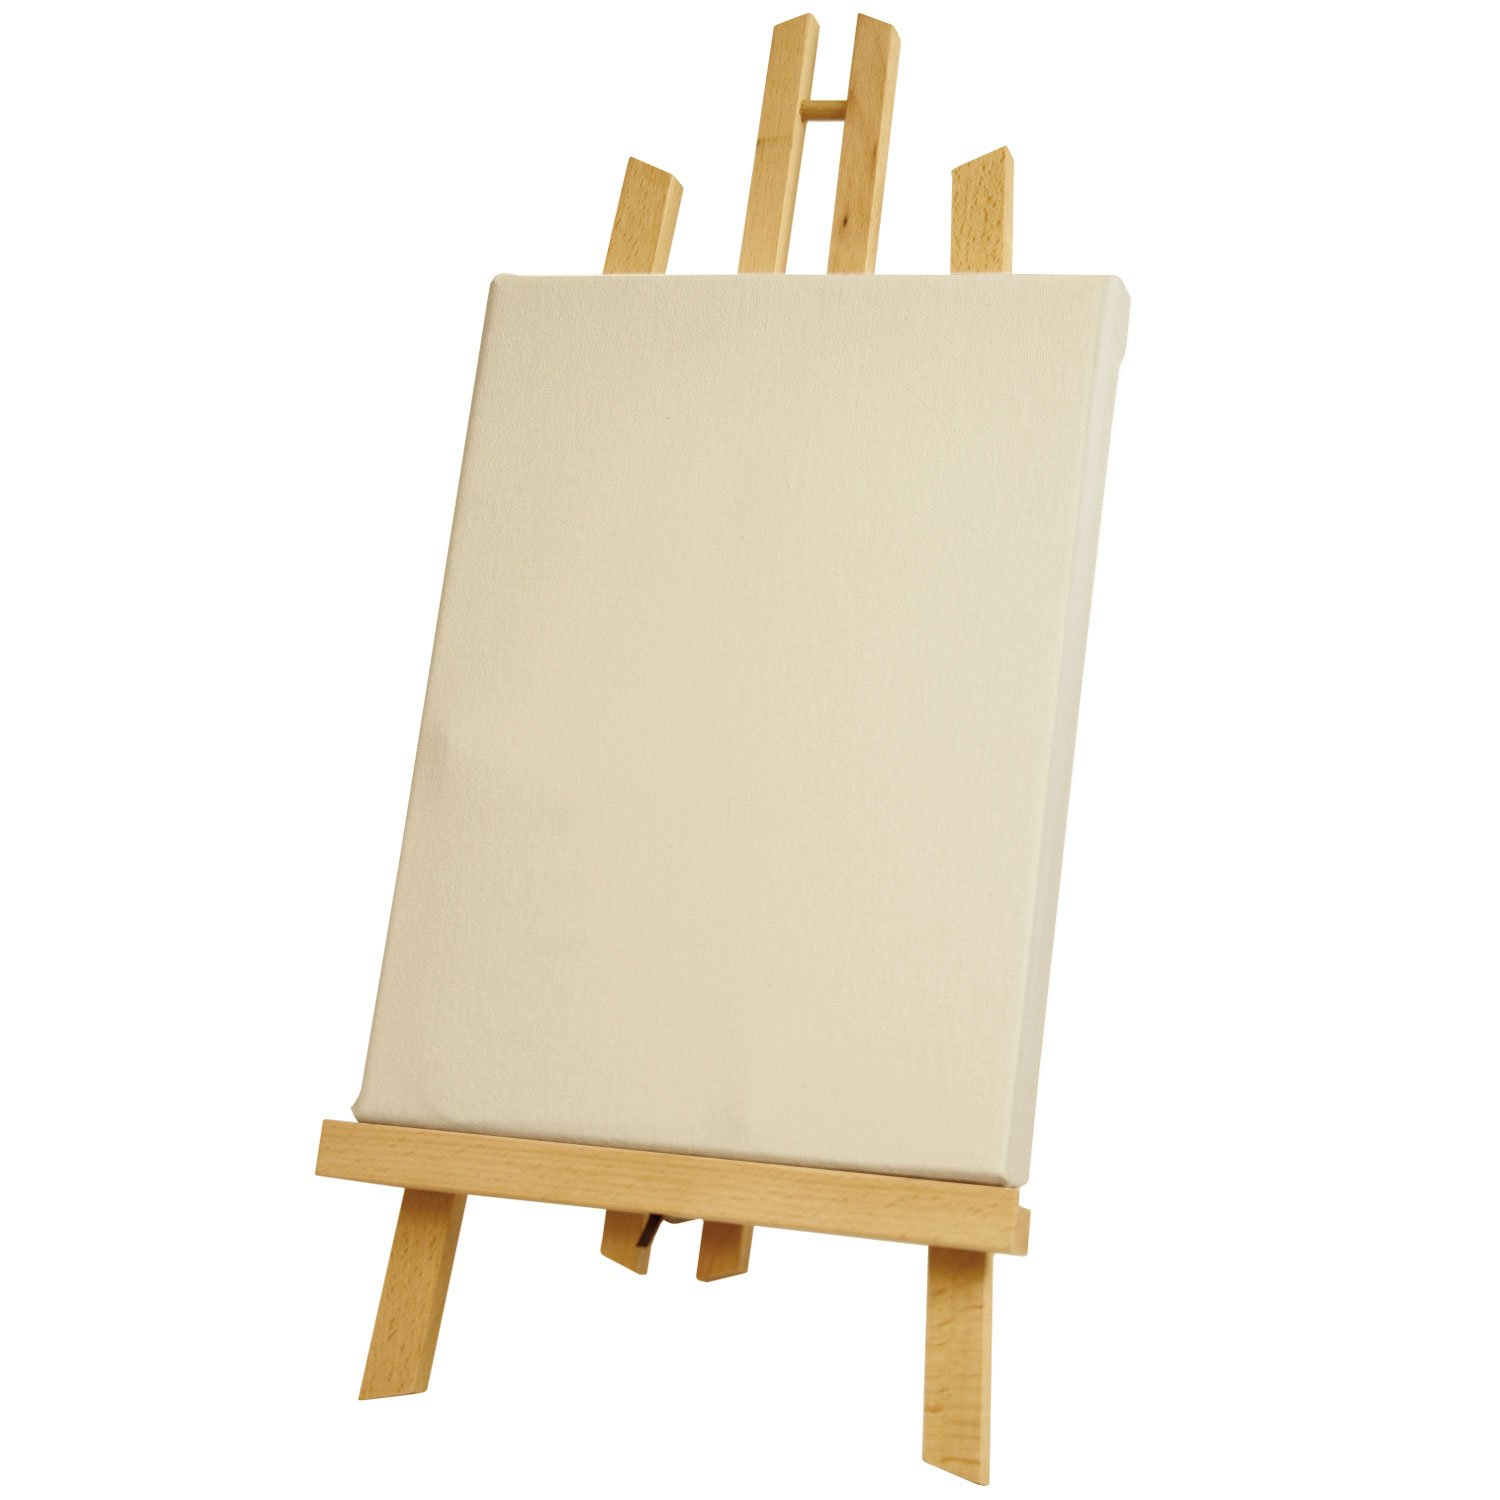 US Art Supply 18'' Large Tabletop Display A-Frame Artist Easel (12-Pack) by US Art Supply (Image #2)